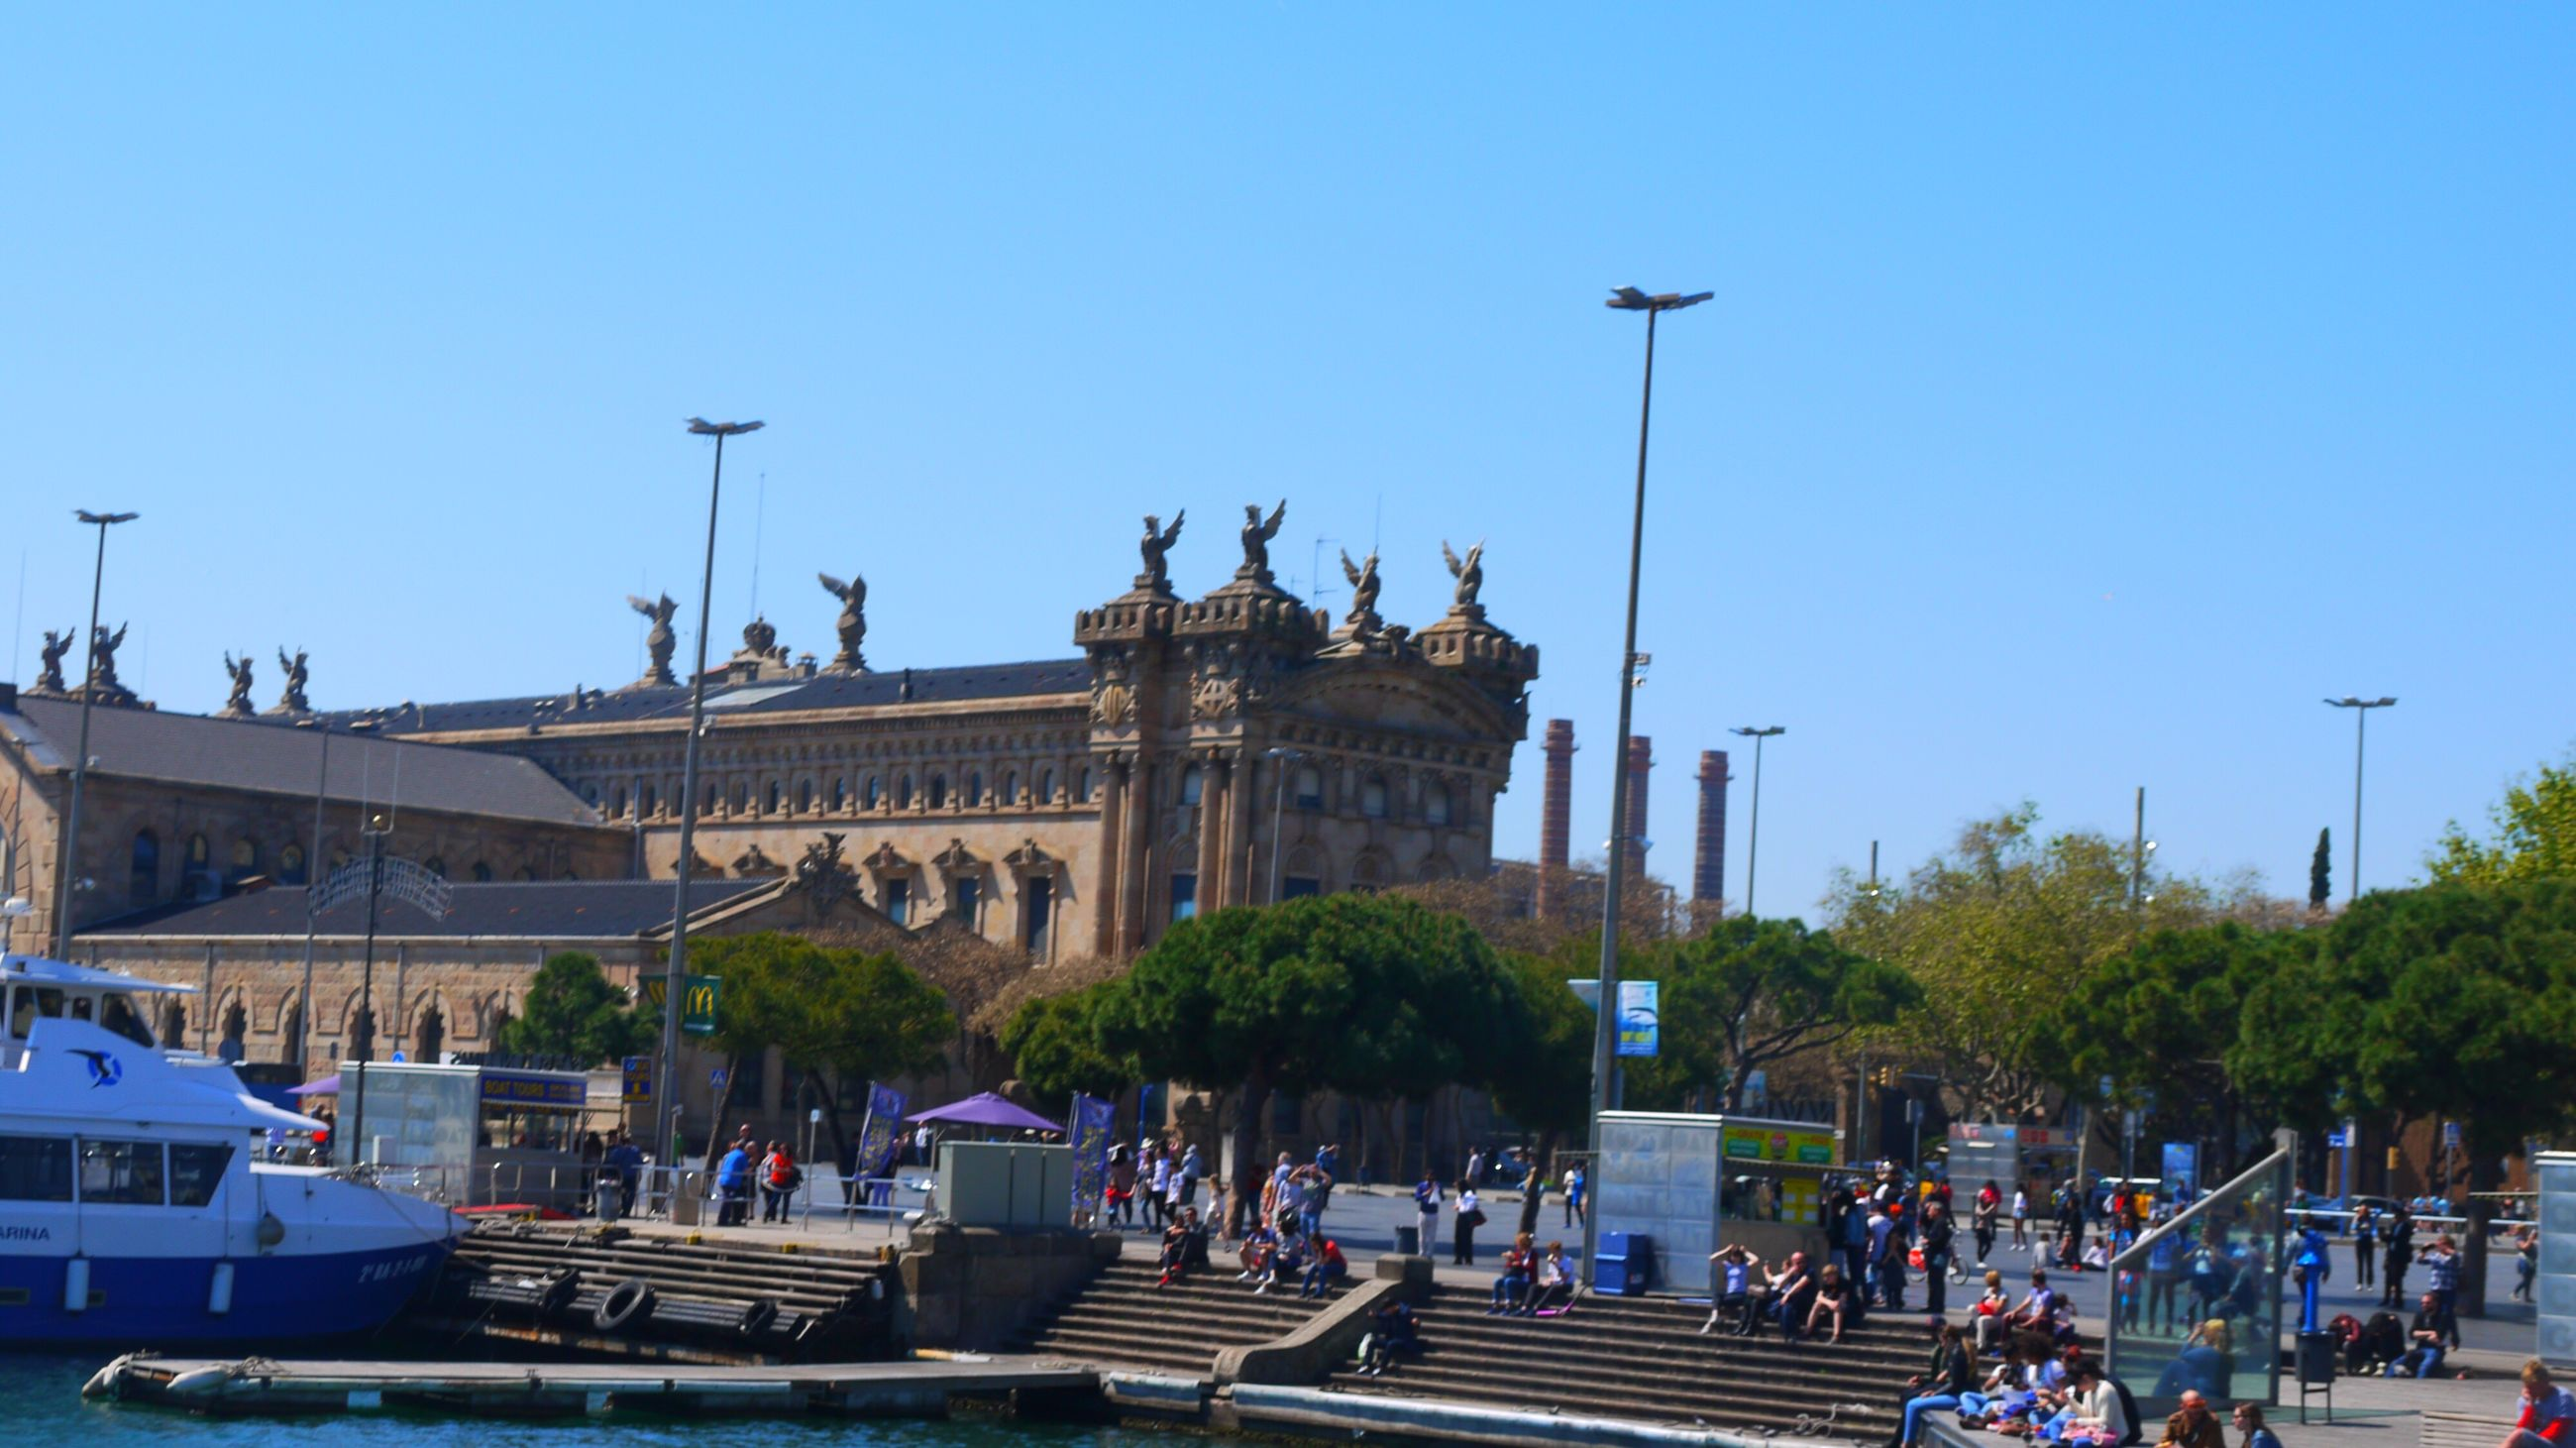 clear sky, city, building exterior, outdoors, architecture, statue, fountain, sculpture, large group of people, day, sky, people